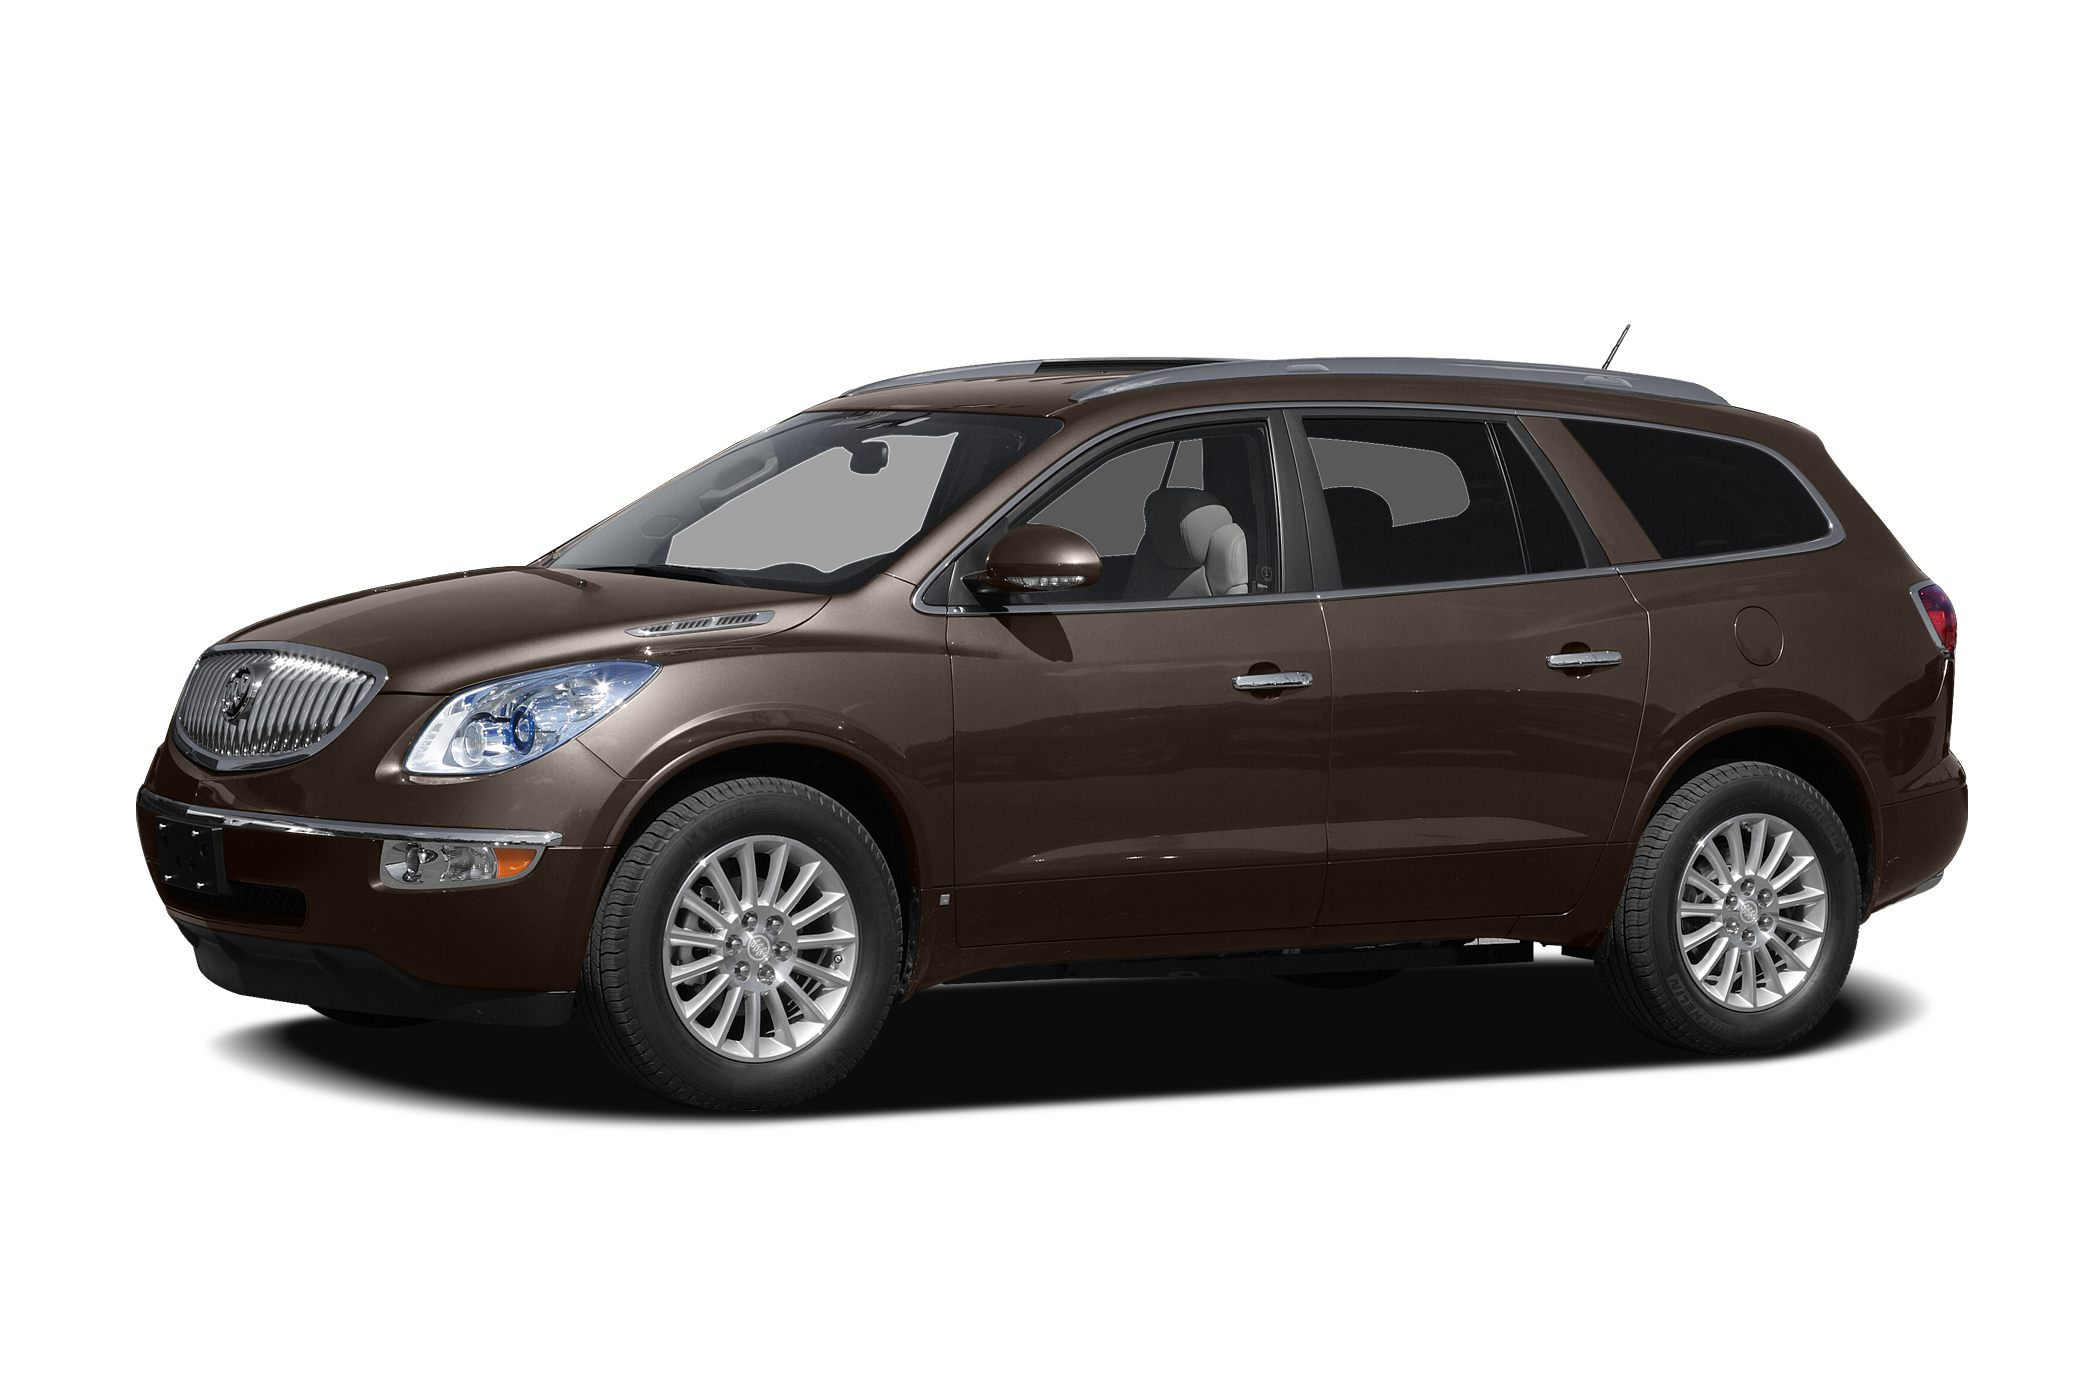 2009 Buick Enclave CXL SUV for sale in Midland for $20,050 with 93,762 miles.